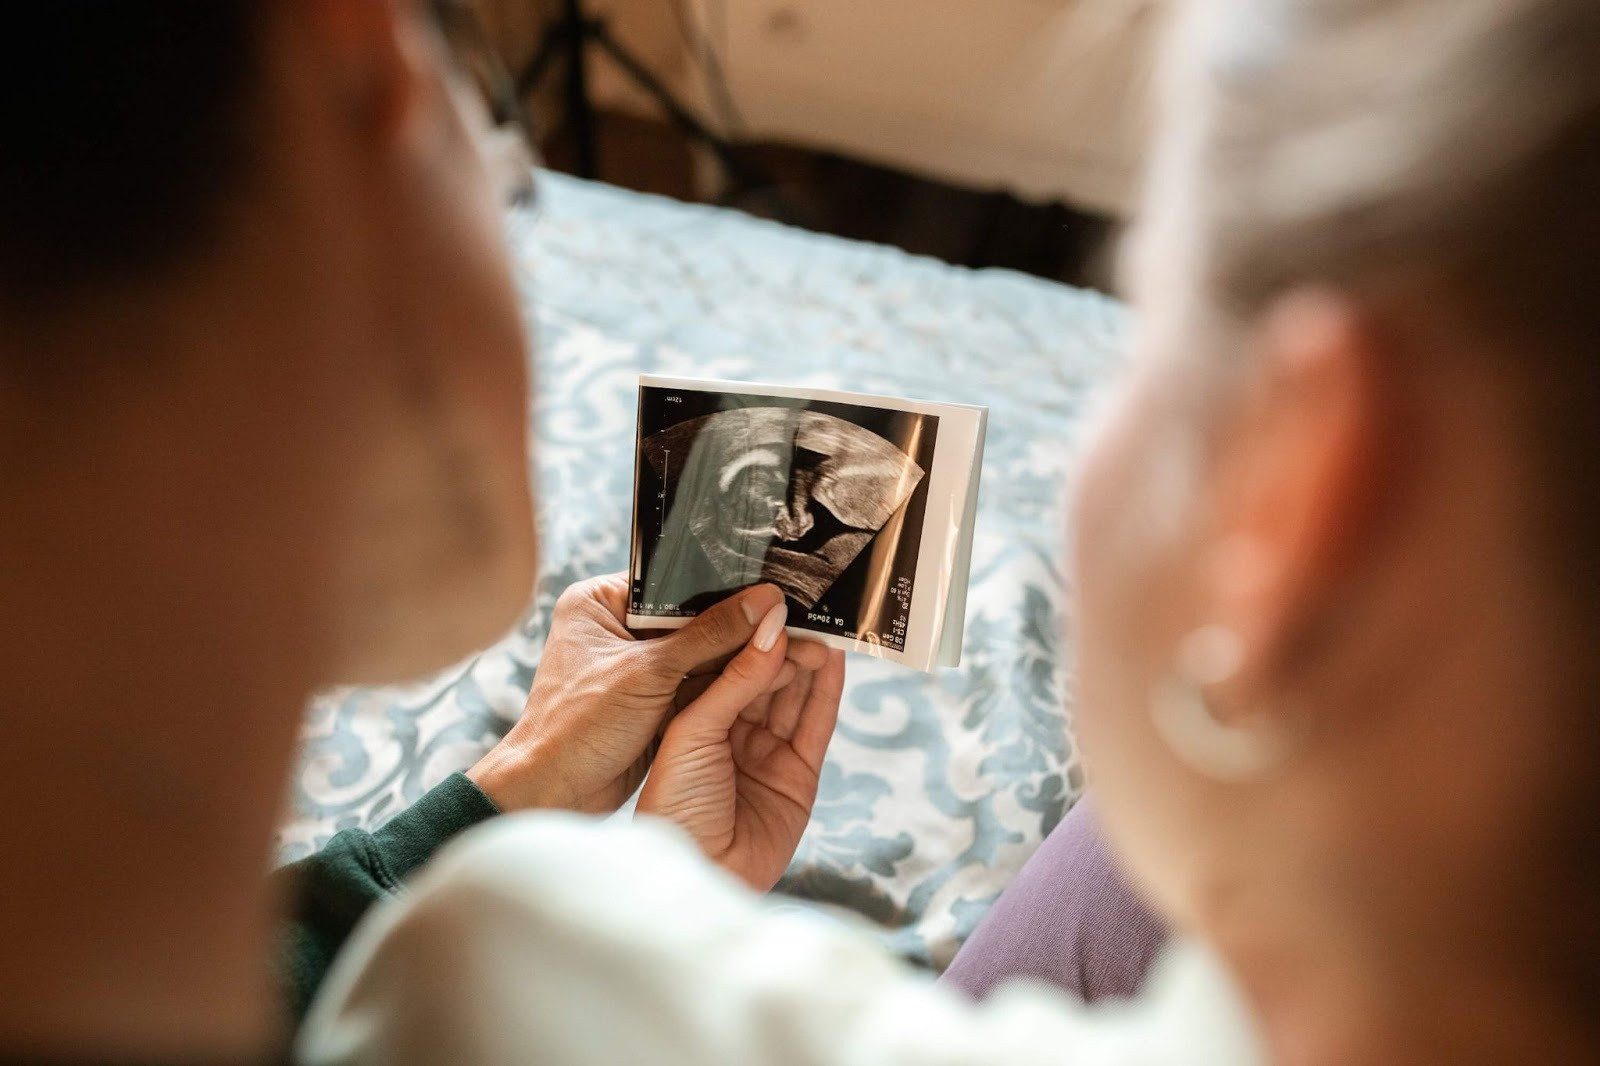 A couple, faces unseen, together holding ultrasound pictures